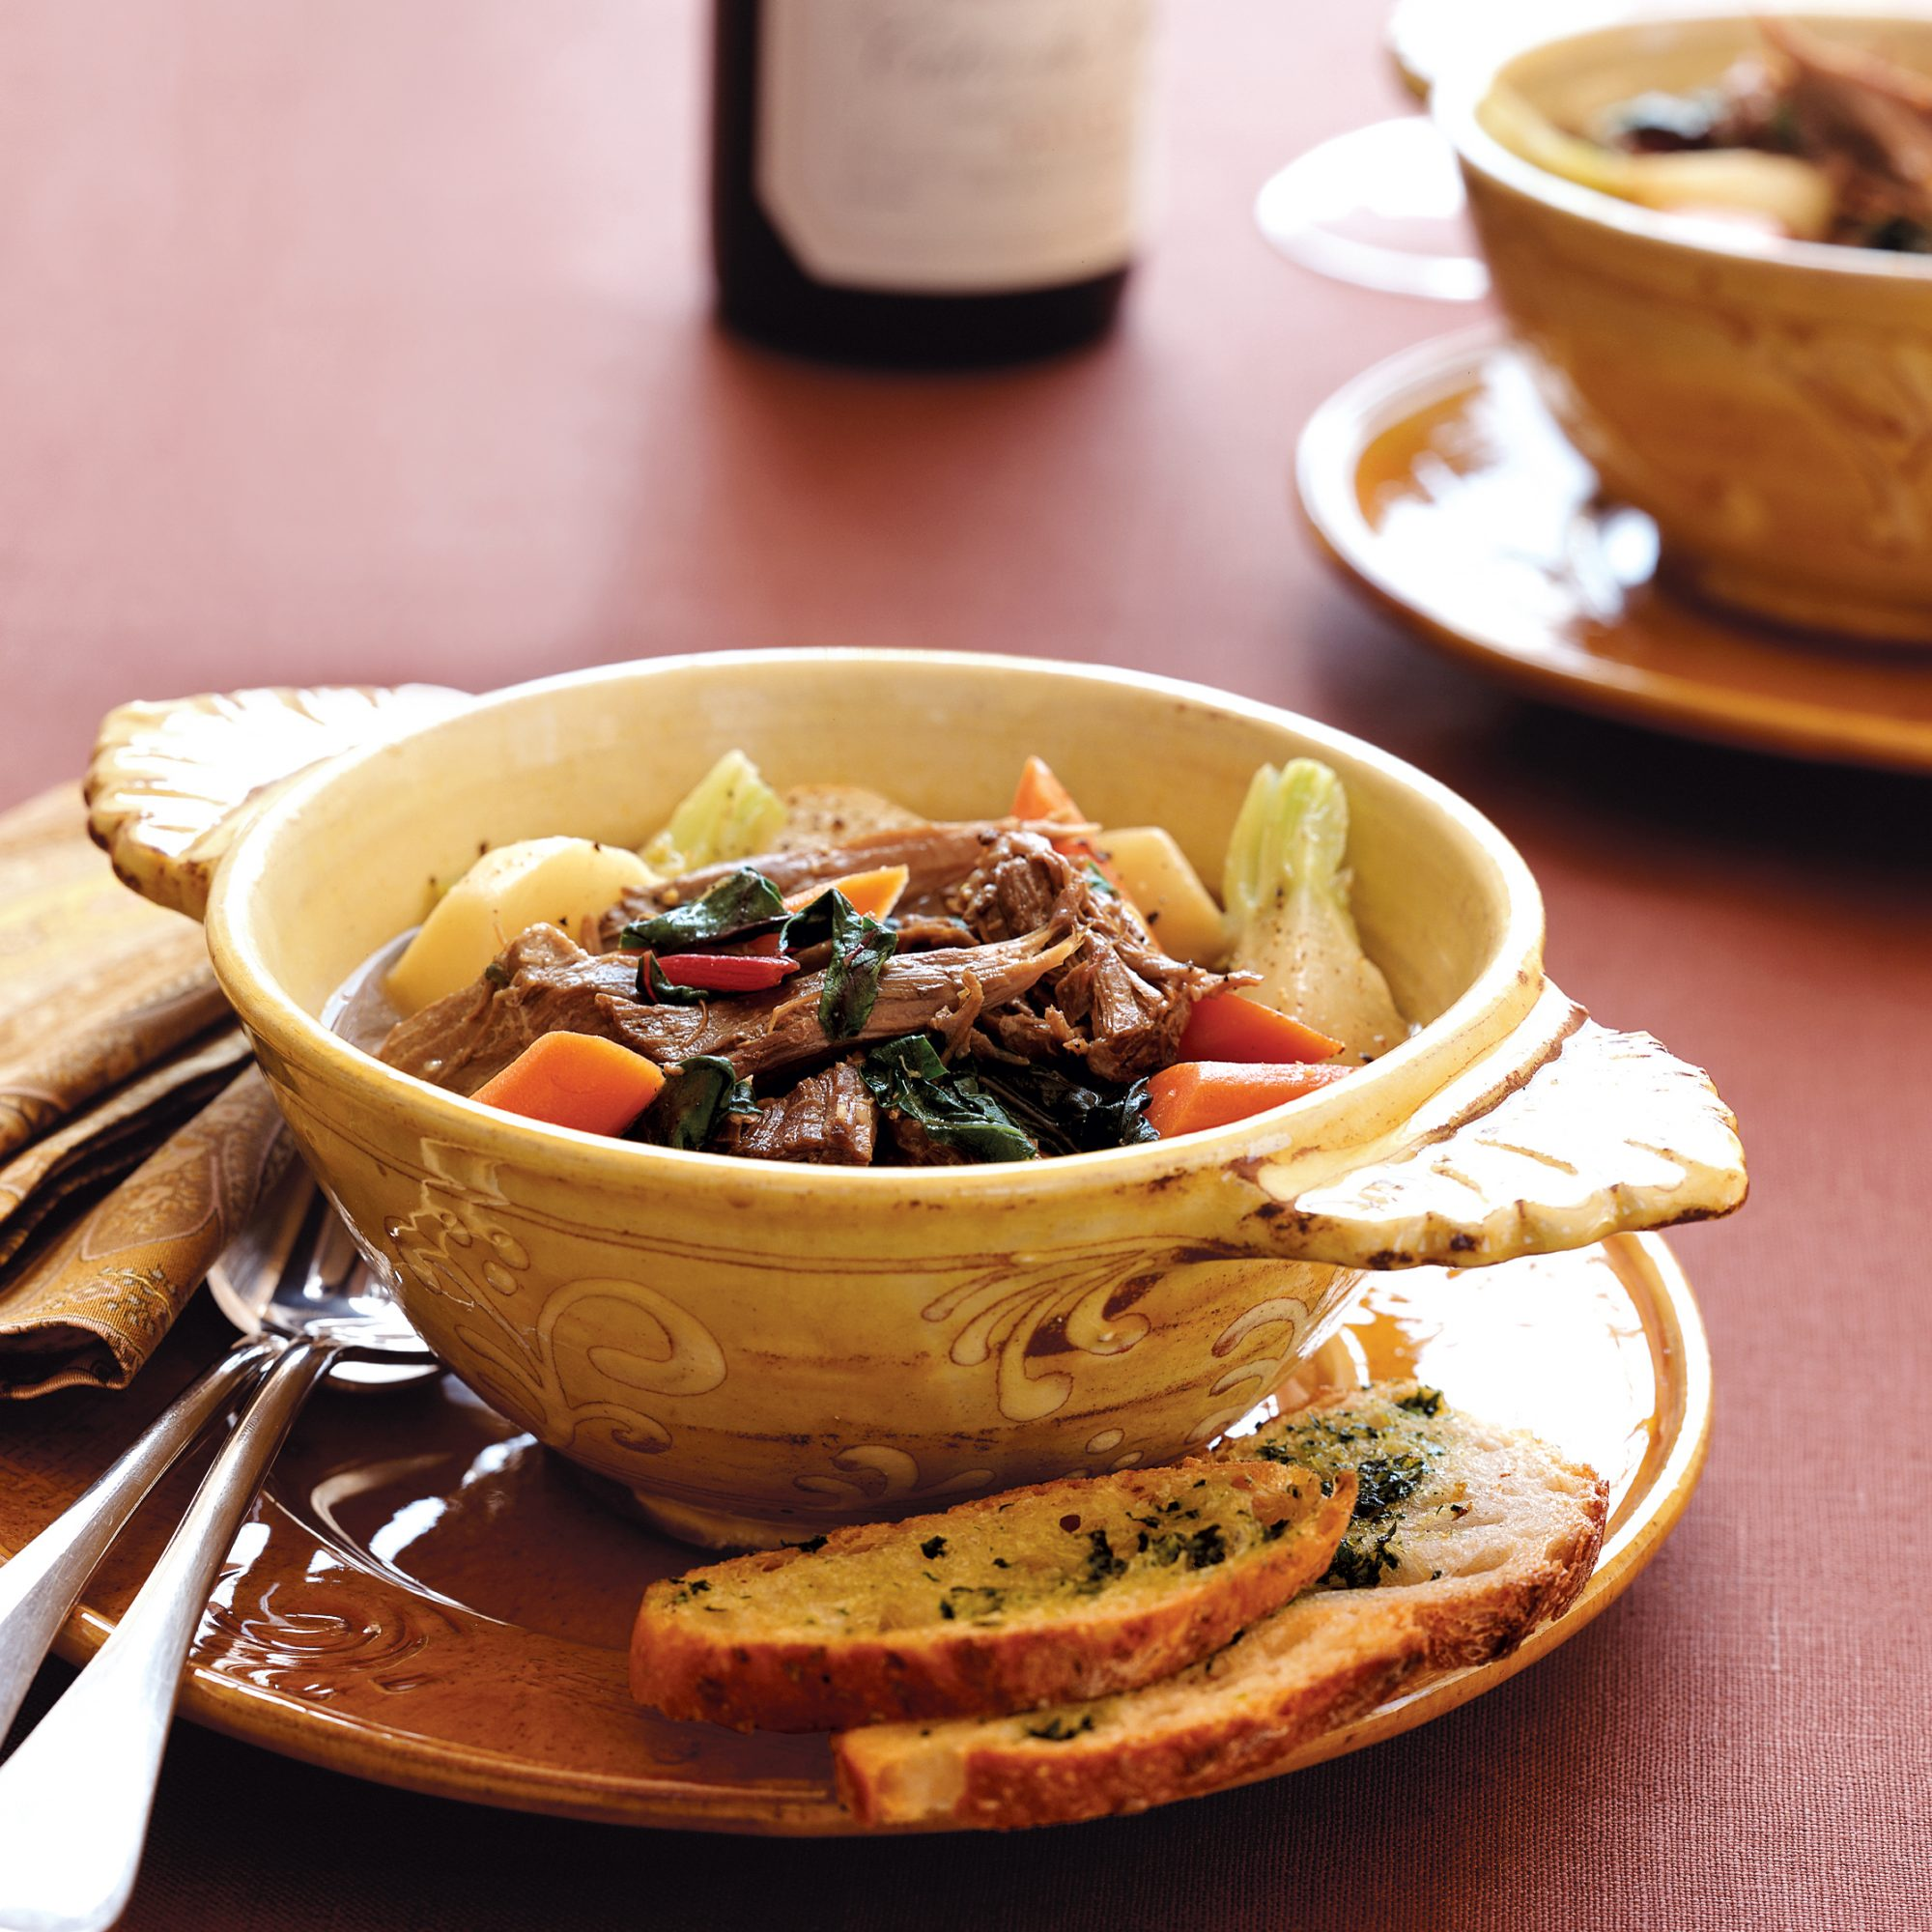 Lamb Stew with Swiss Chard and Garlic-Parsley Toasts